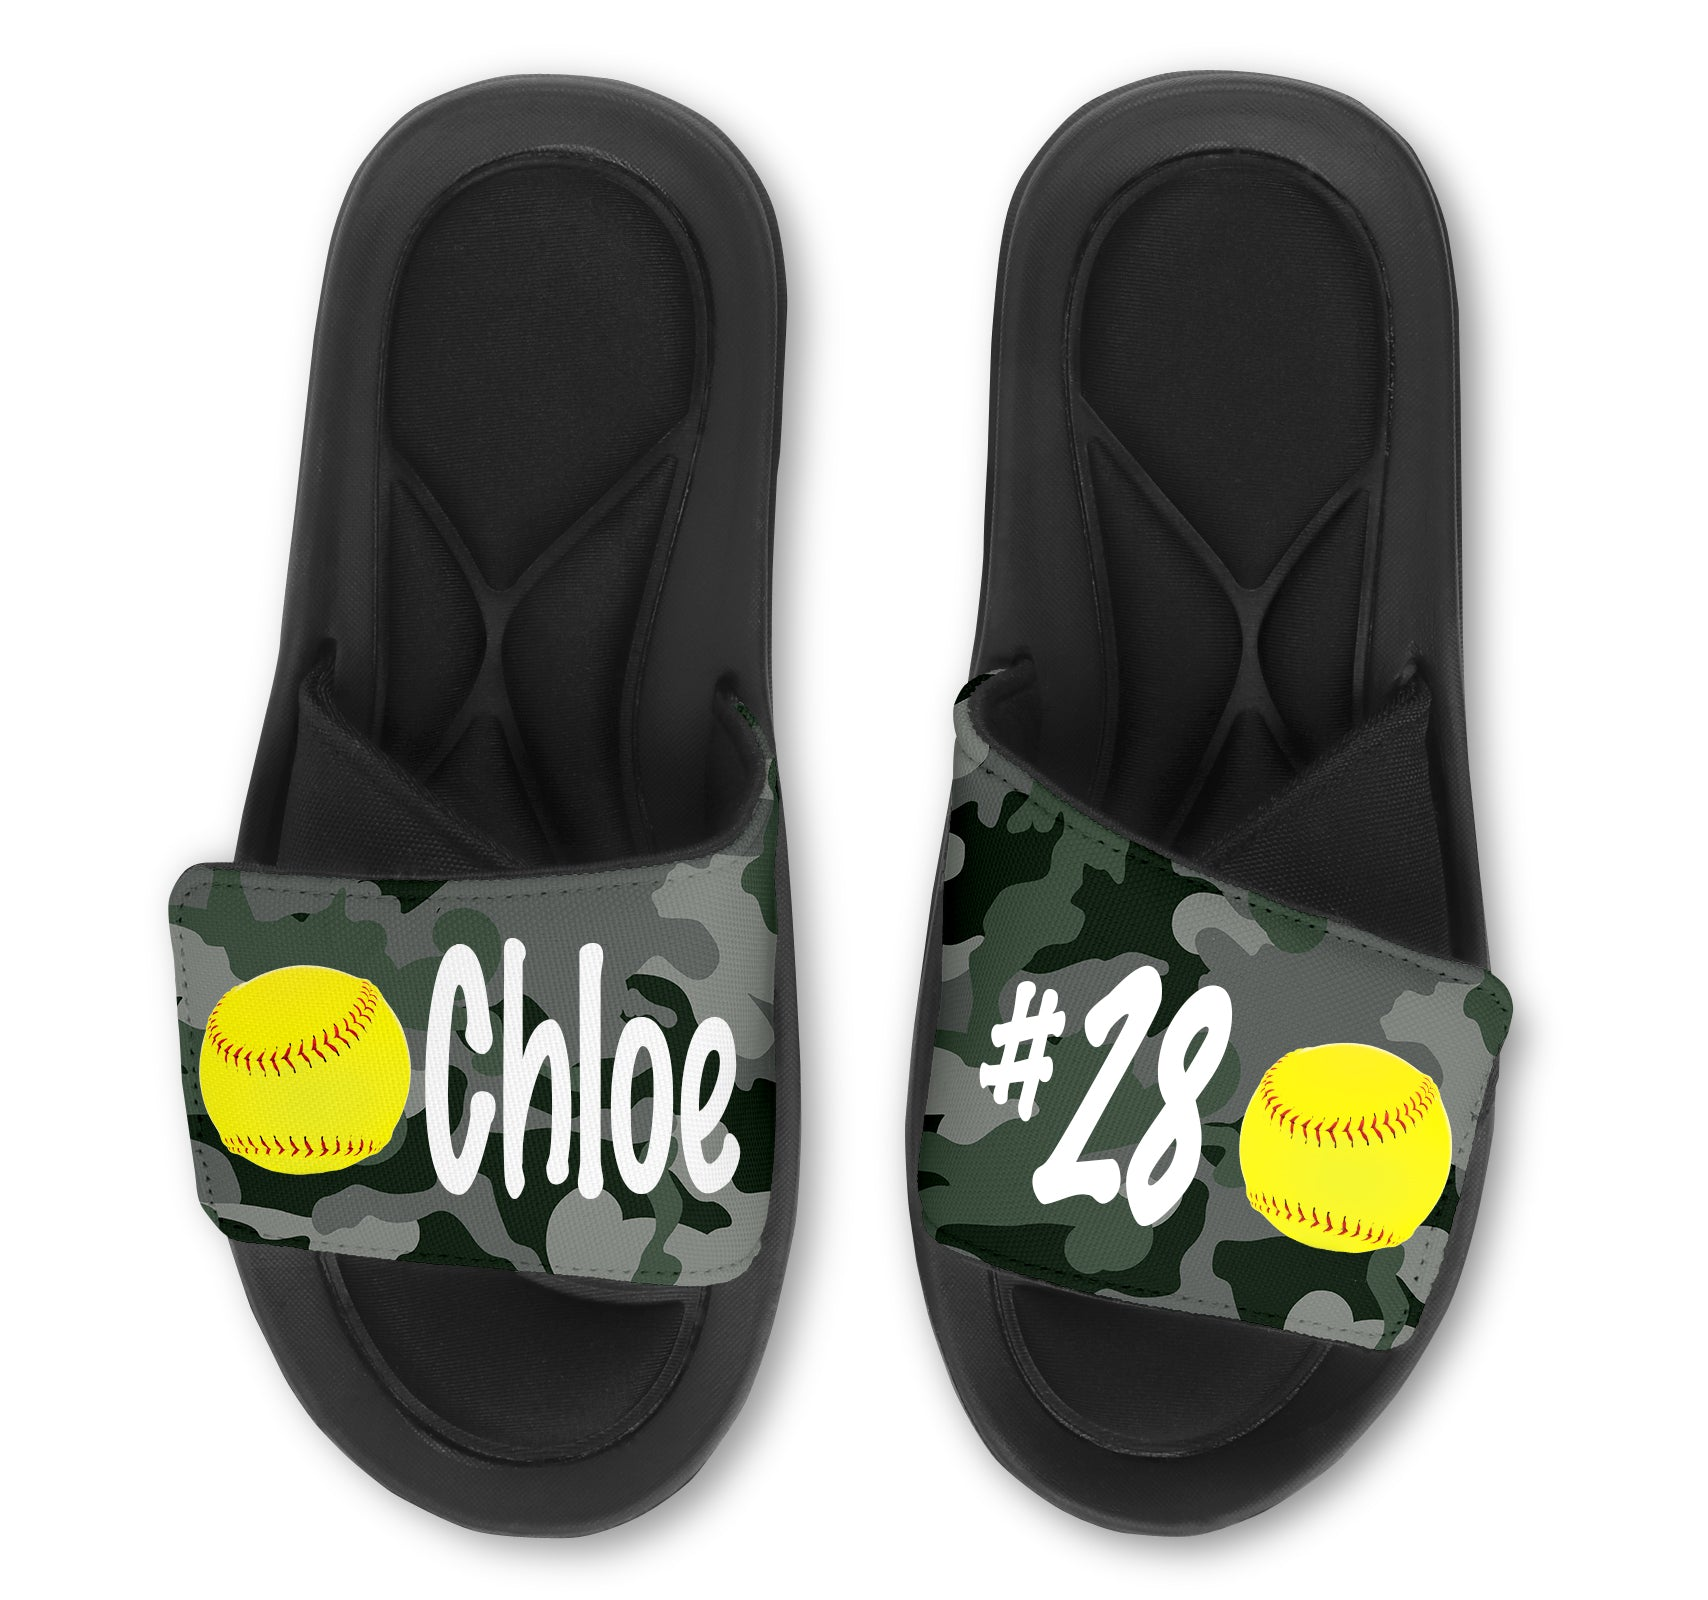 Softball Custom Slides / Sandals - Camo